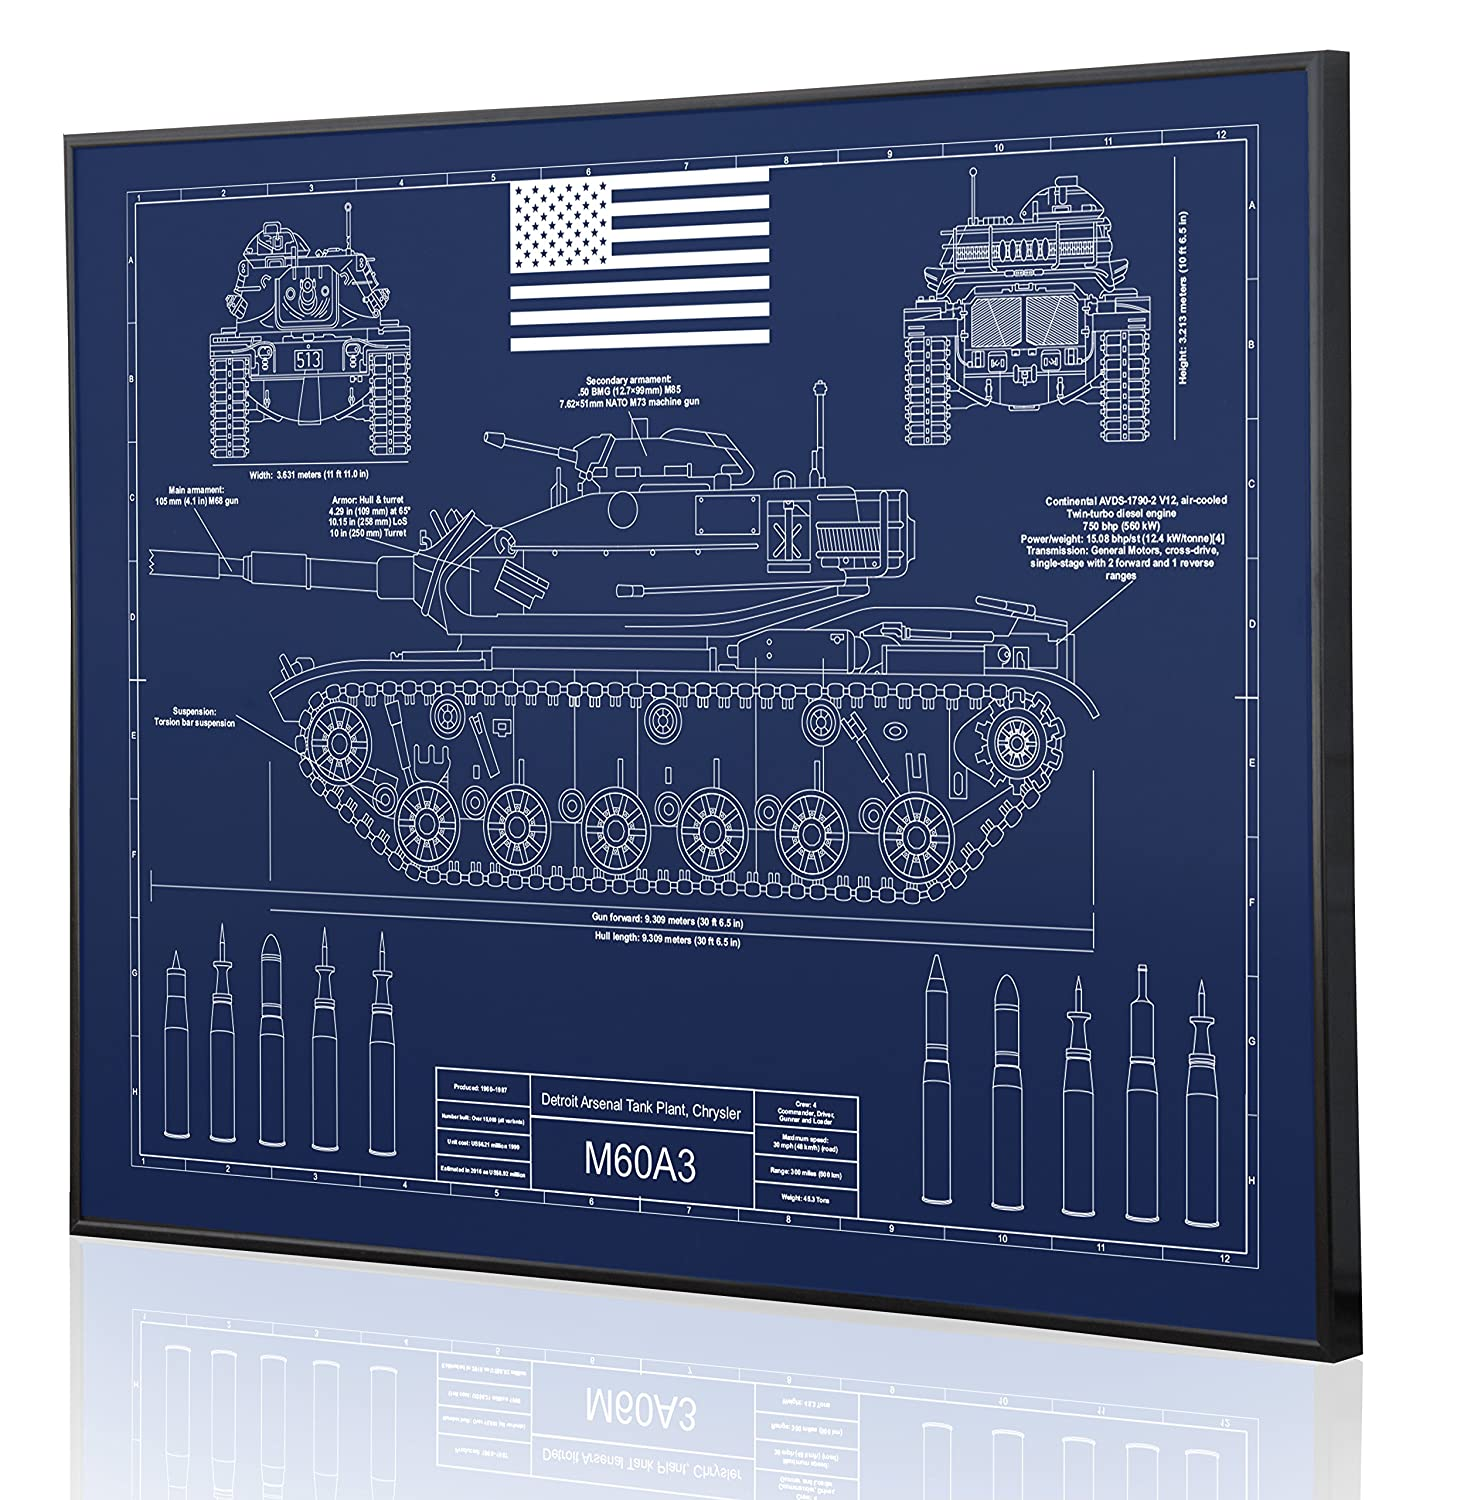 Amazon.com: M60A3 Patton Tank Blueprint Artwork-Laser Marked & Personalized-The Perfect Tanker Gifts: Handmade